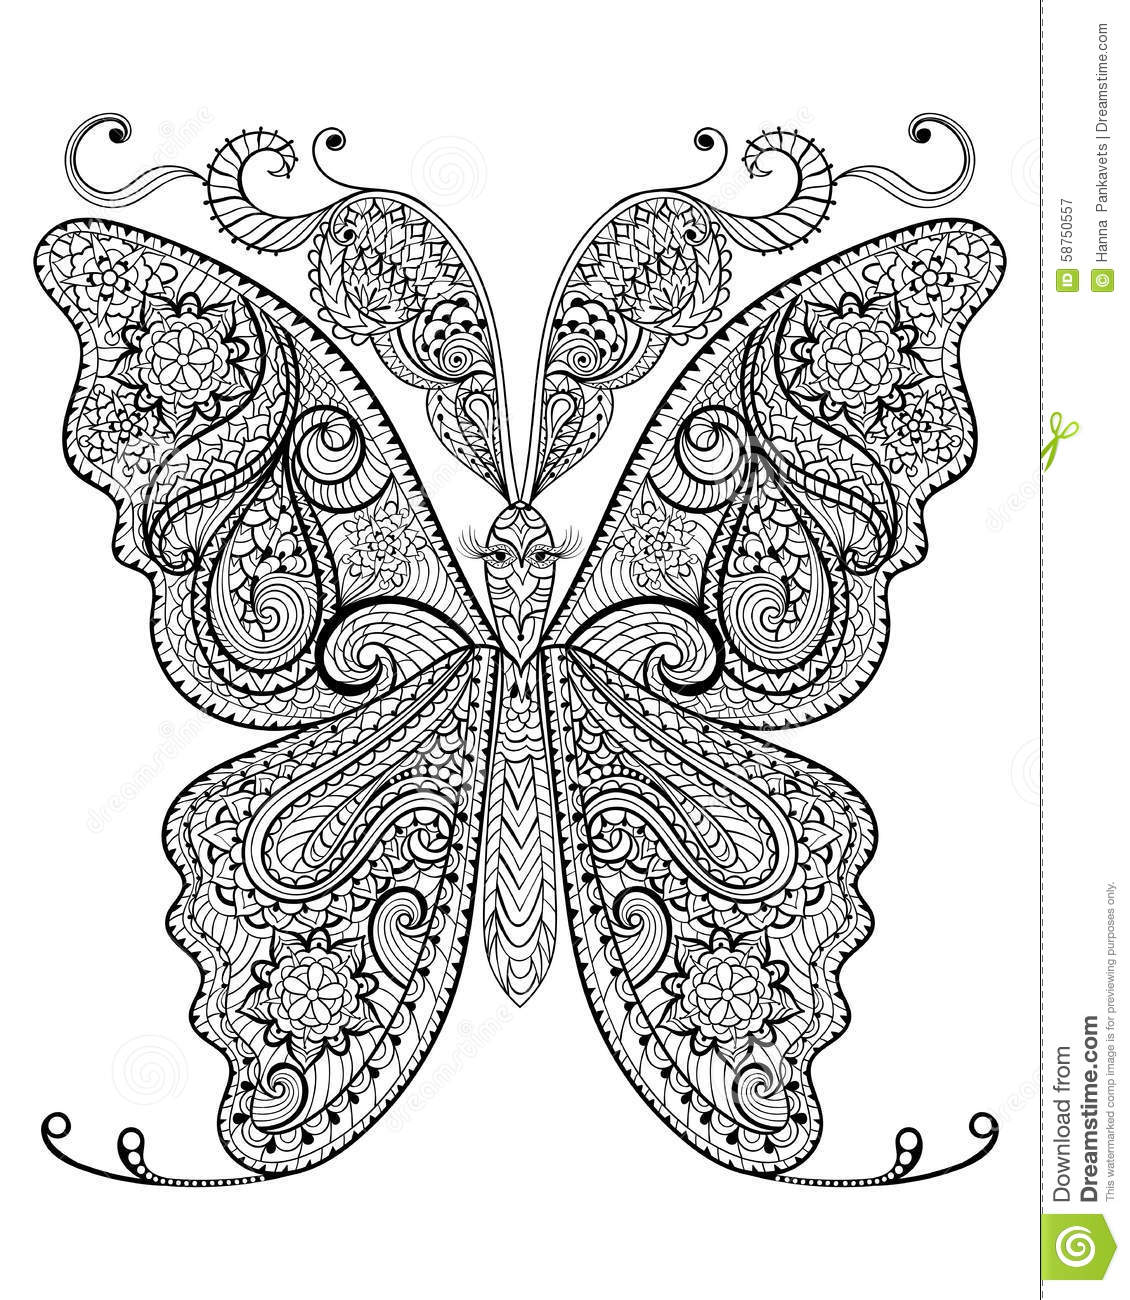 Anti stress colouring pages for adults - Adult Anti Background Butterfly Coloring